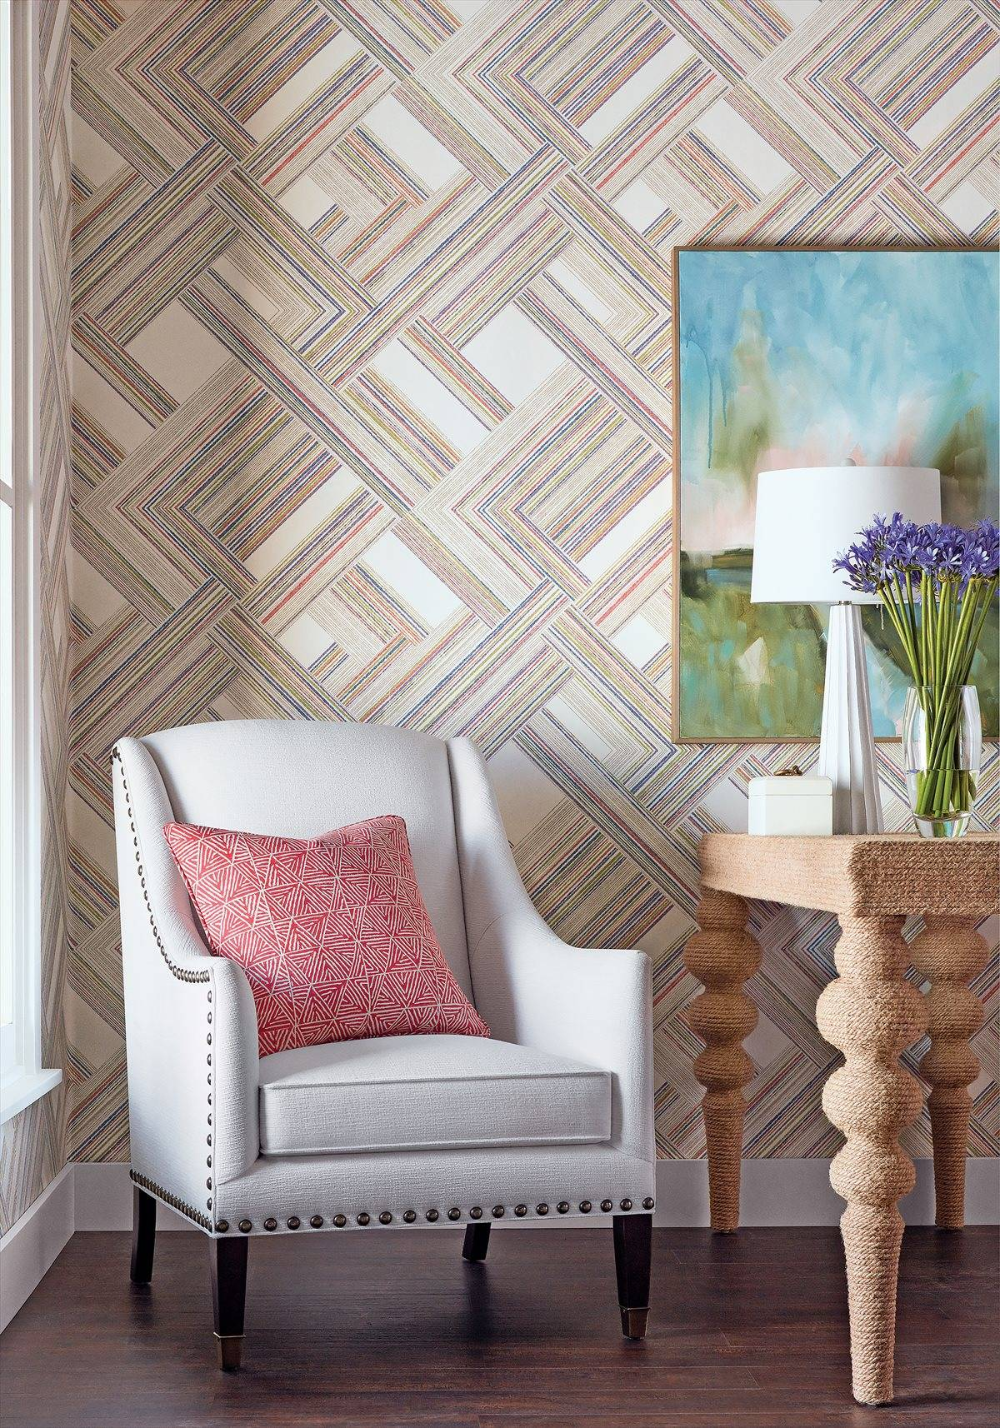 Telaio T10448 in 2020 Bright wallpaper, Geometric